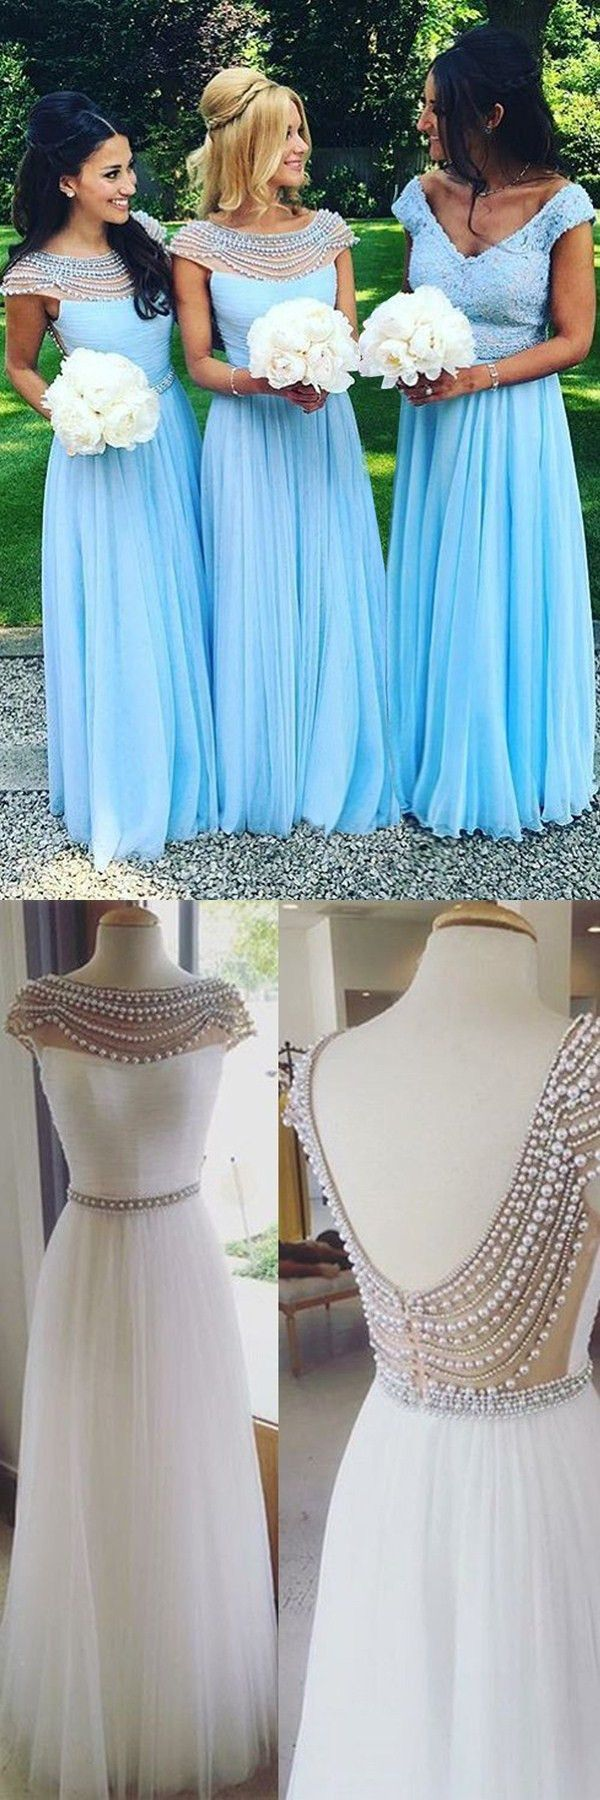 bridesmaid dress,white bridesmaid dress,baby blue bridesmaid dress,party…